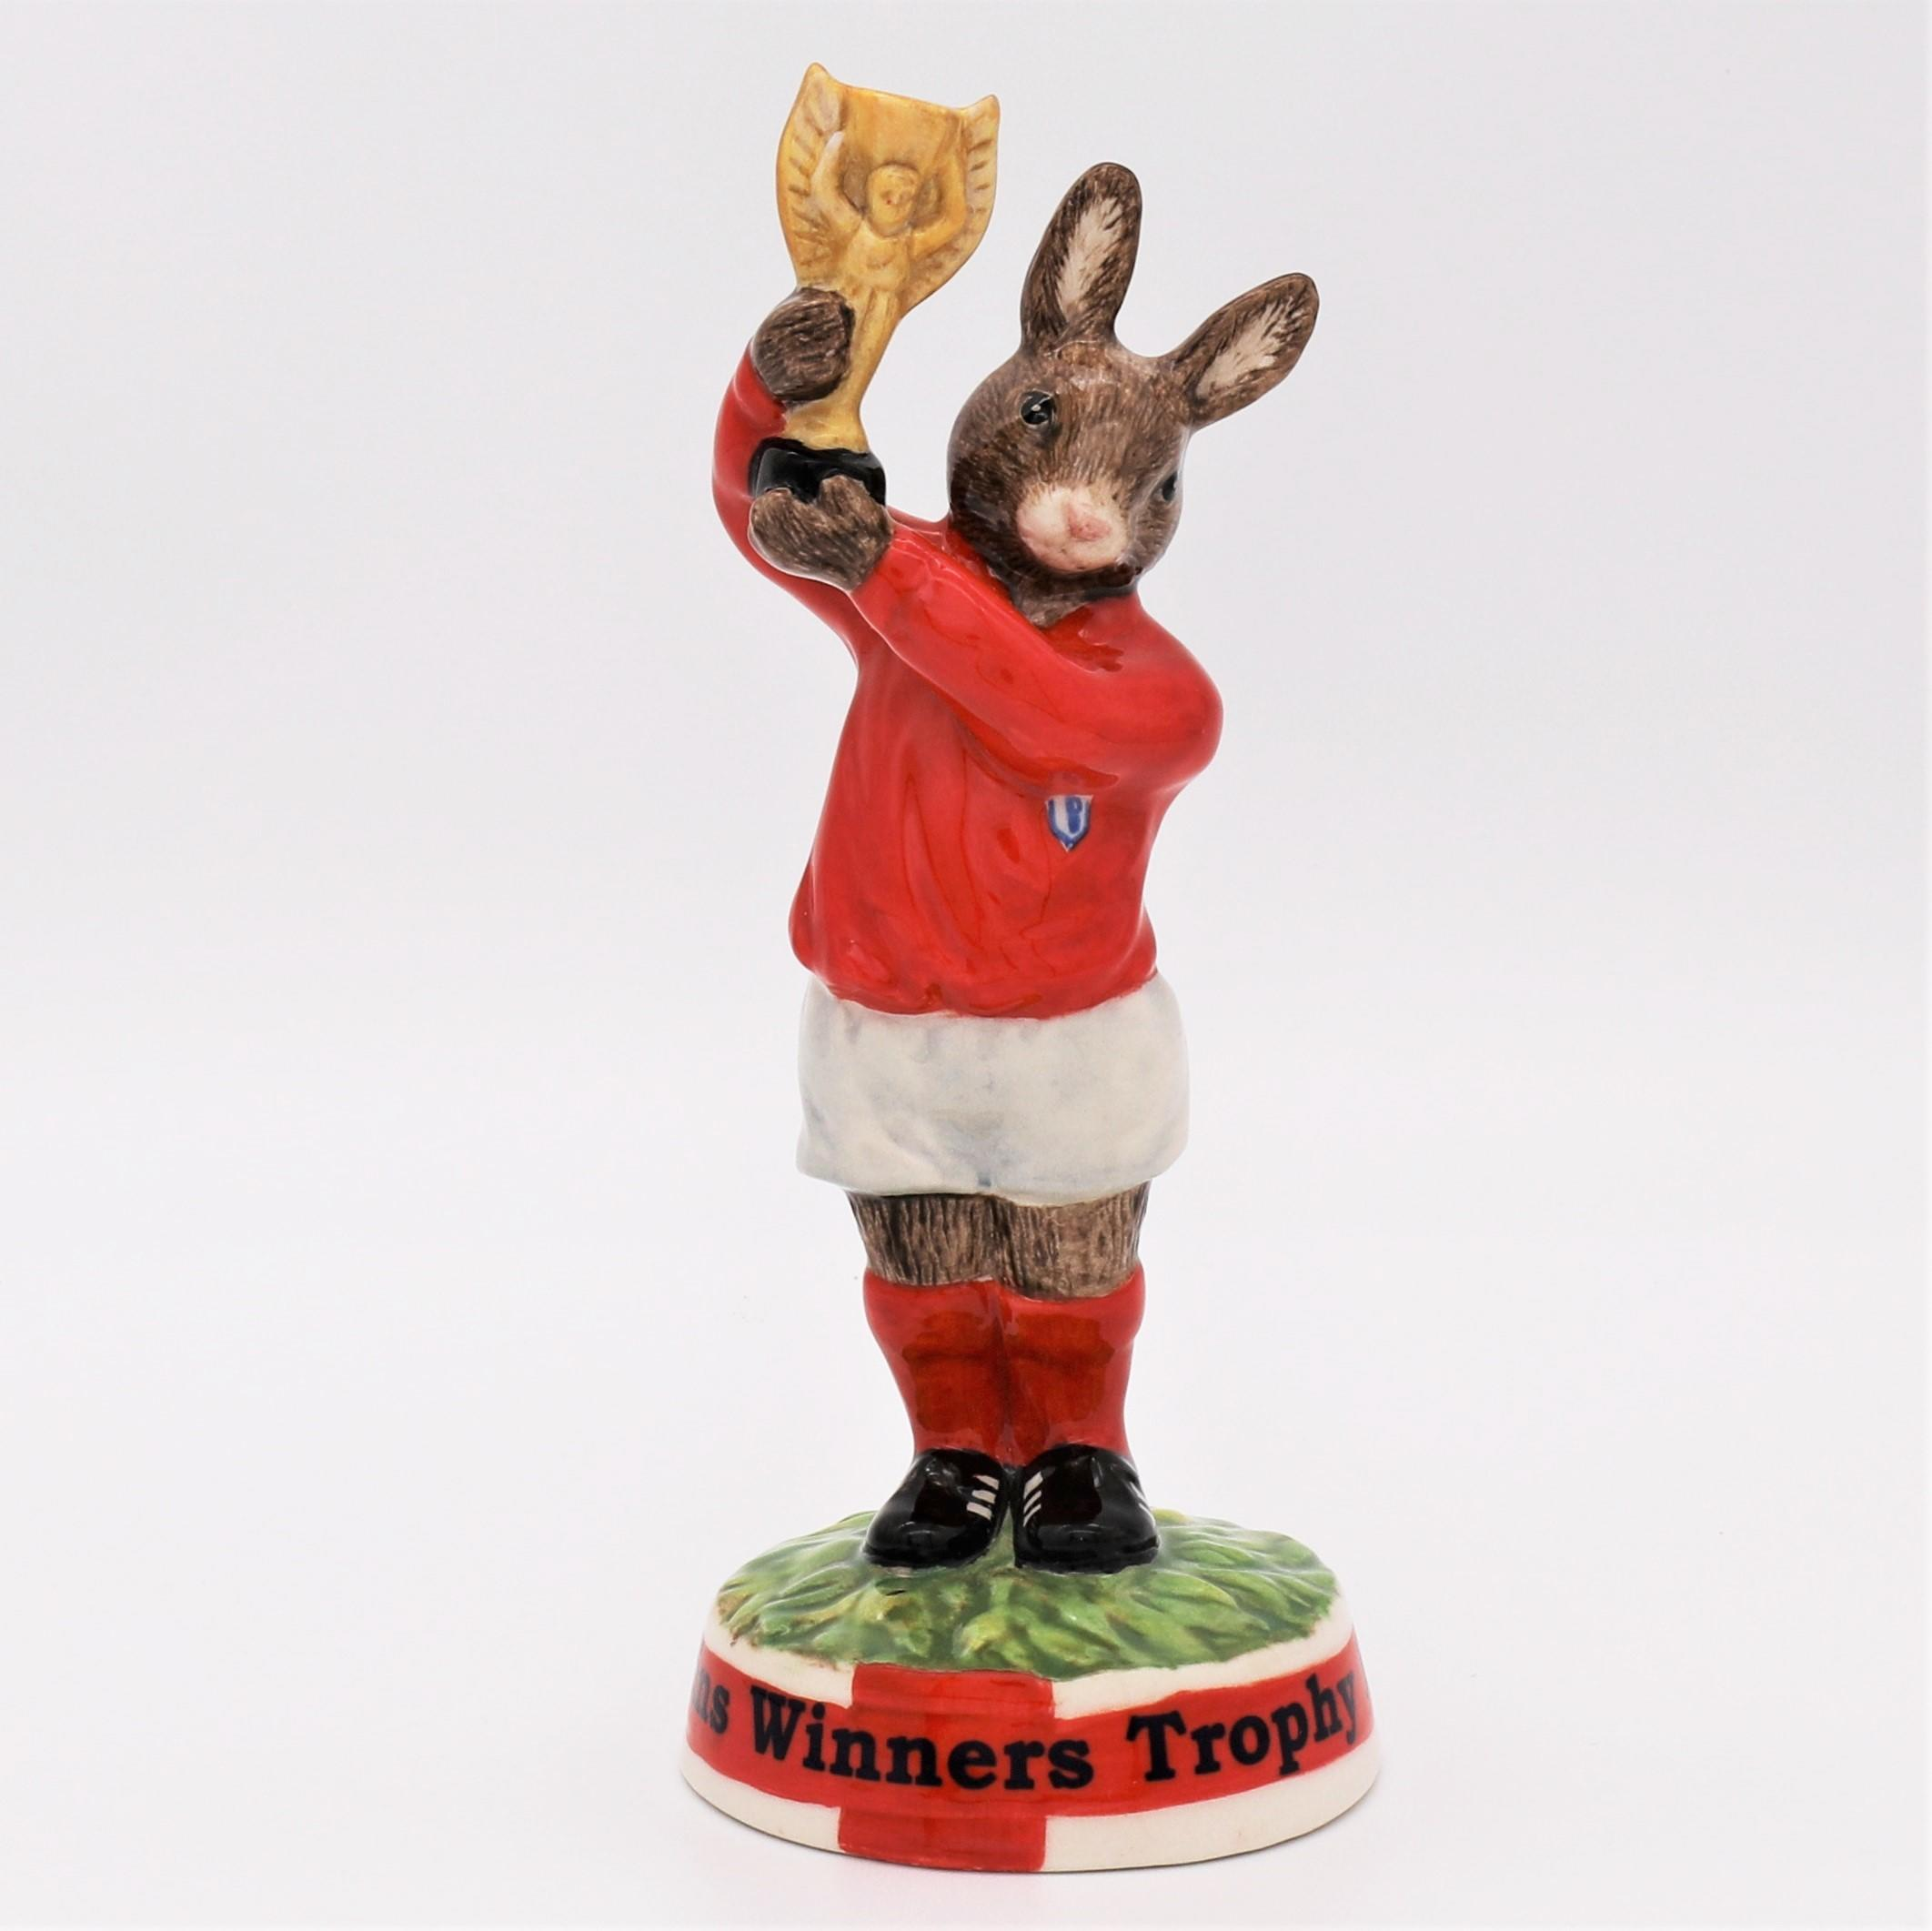 Royal Doulton Bunnykins figure - DB410 Winners Trophy 1966 front